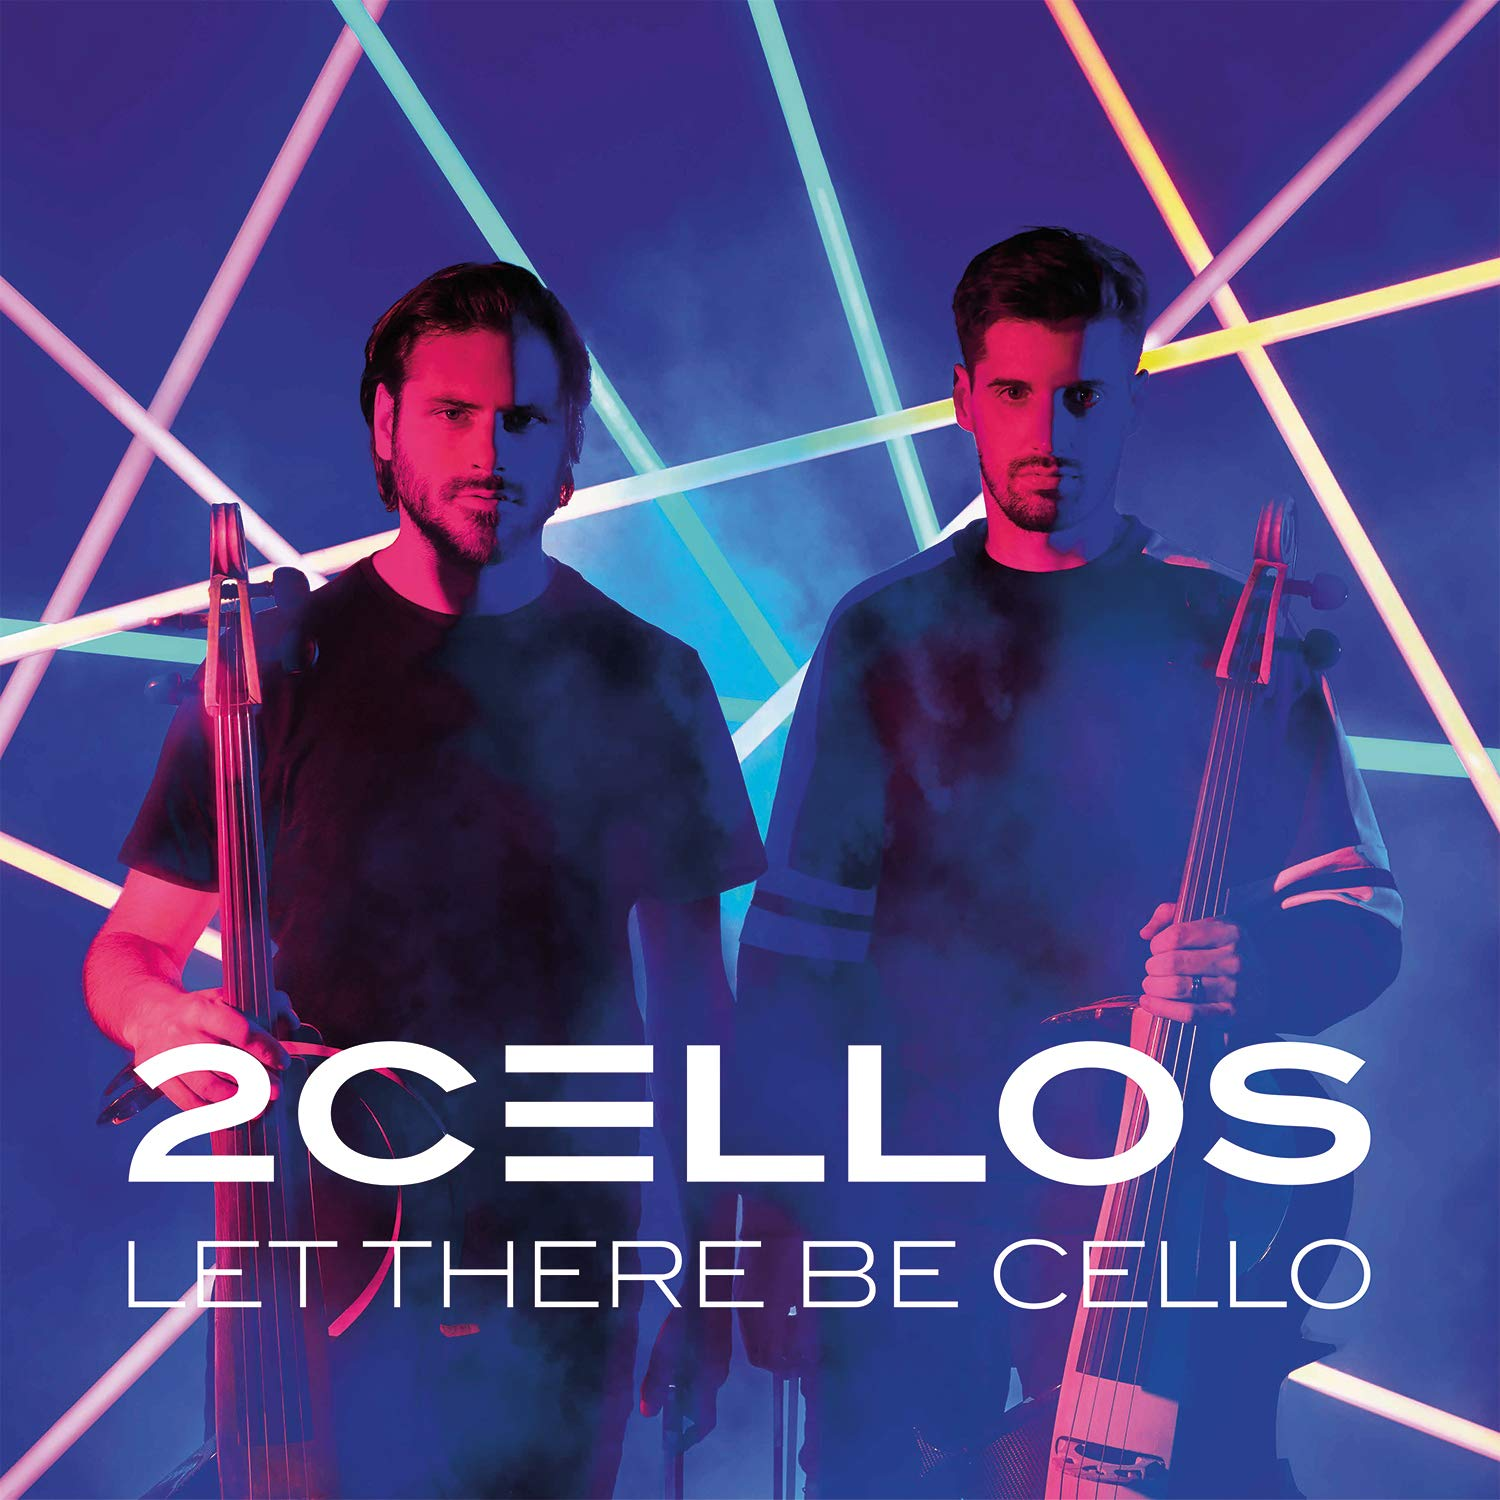 Vinilo : 2Cellos - Let There Be Cello (Blue, Limited Edition, 180 Gram Vinyl, Gatefold LP Jacket)